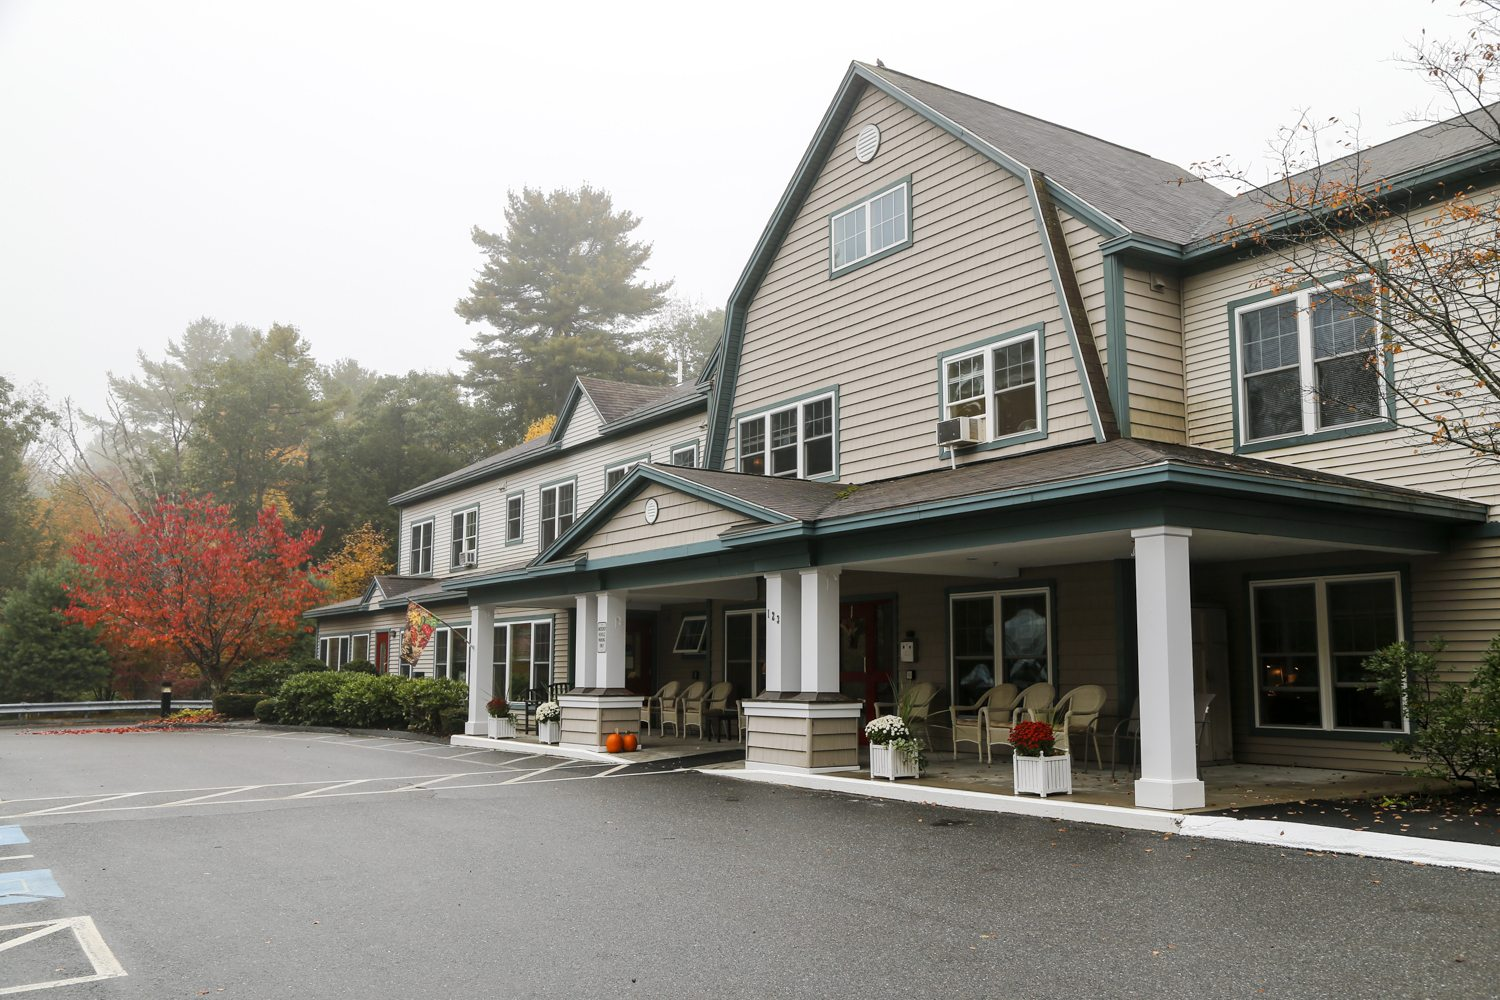 An exterior shot of the Inn at Village Square.